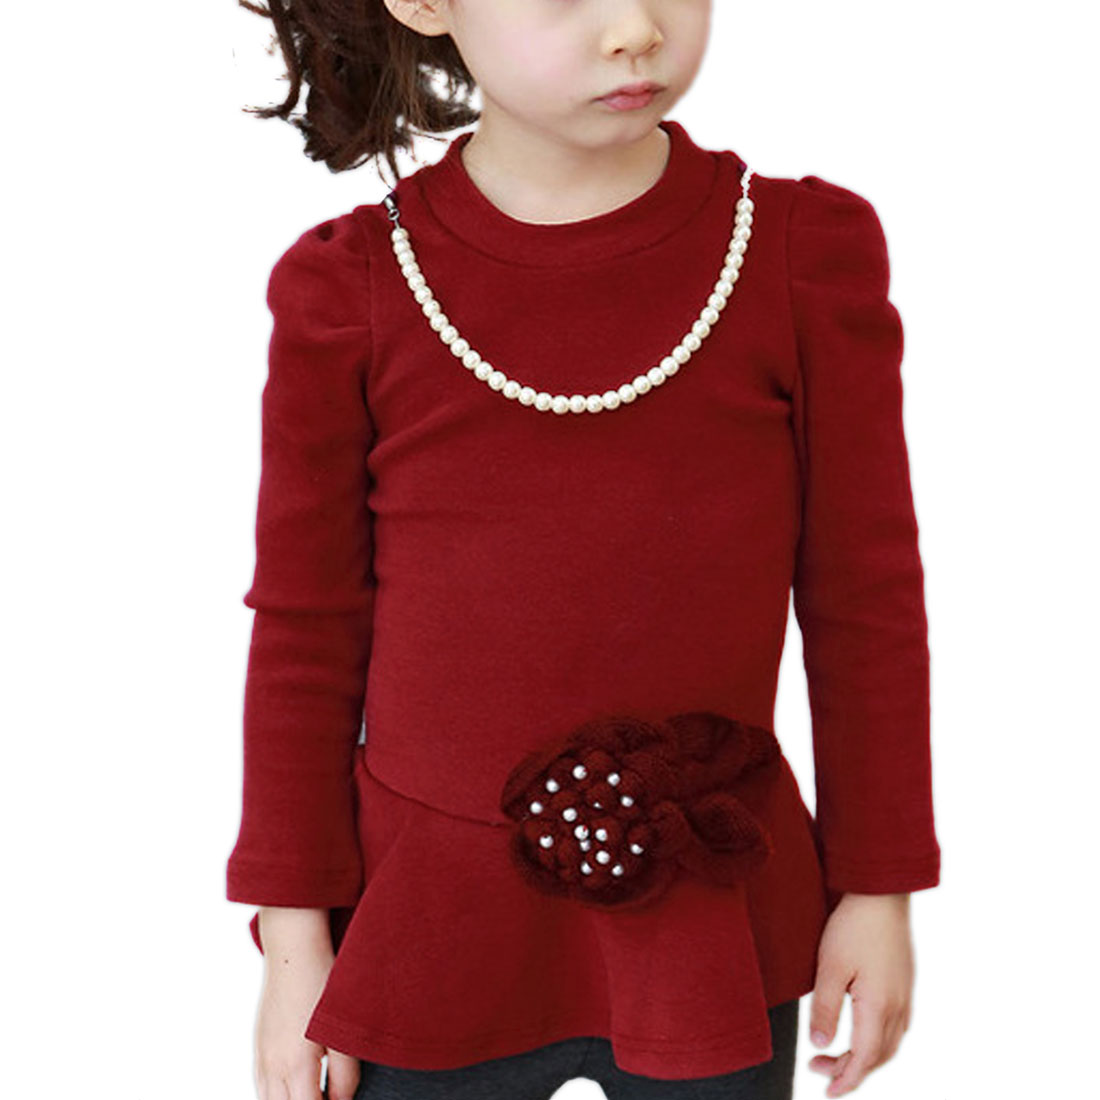 Girls Pullover Round Neck Beads Detail Burgundy Dress 5